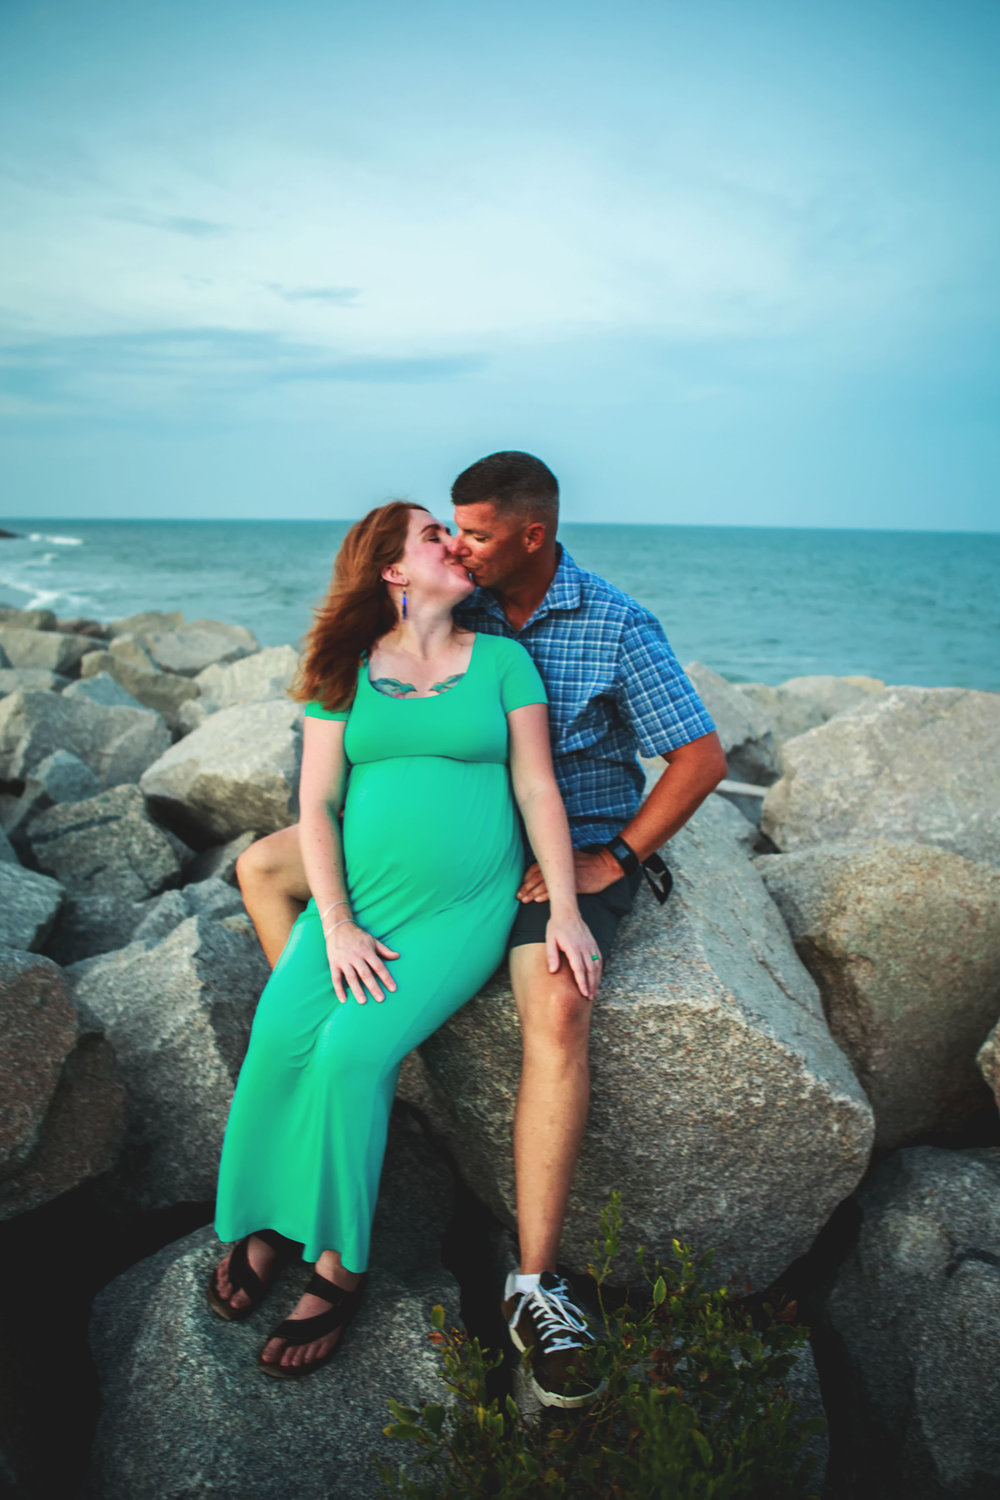 Fort_Fisher_Maternity_Photographer_Tiffany_Abruzzo_40.jpg